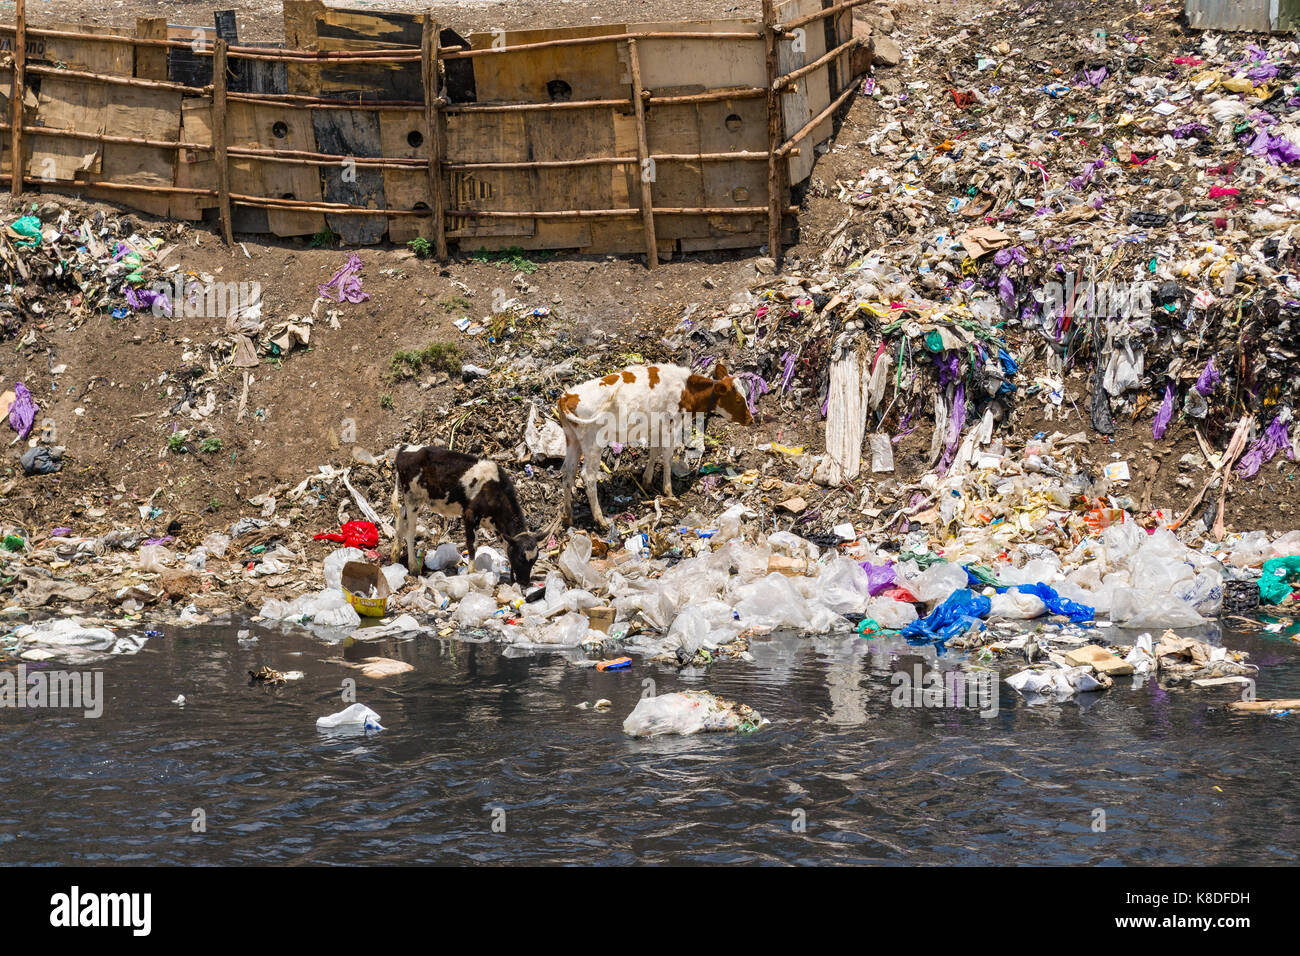 Slum shacks line the Ngong river which is polluted with rubbish, plastic waste and garbage, a herd of cows can be - Stock Image